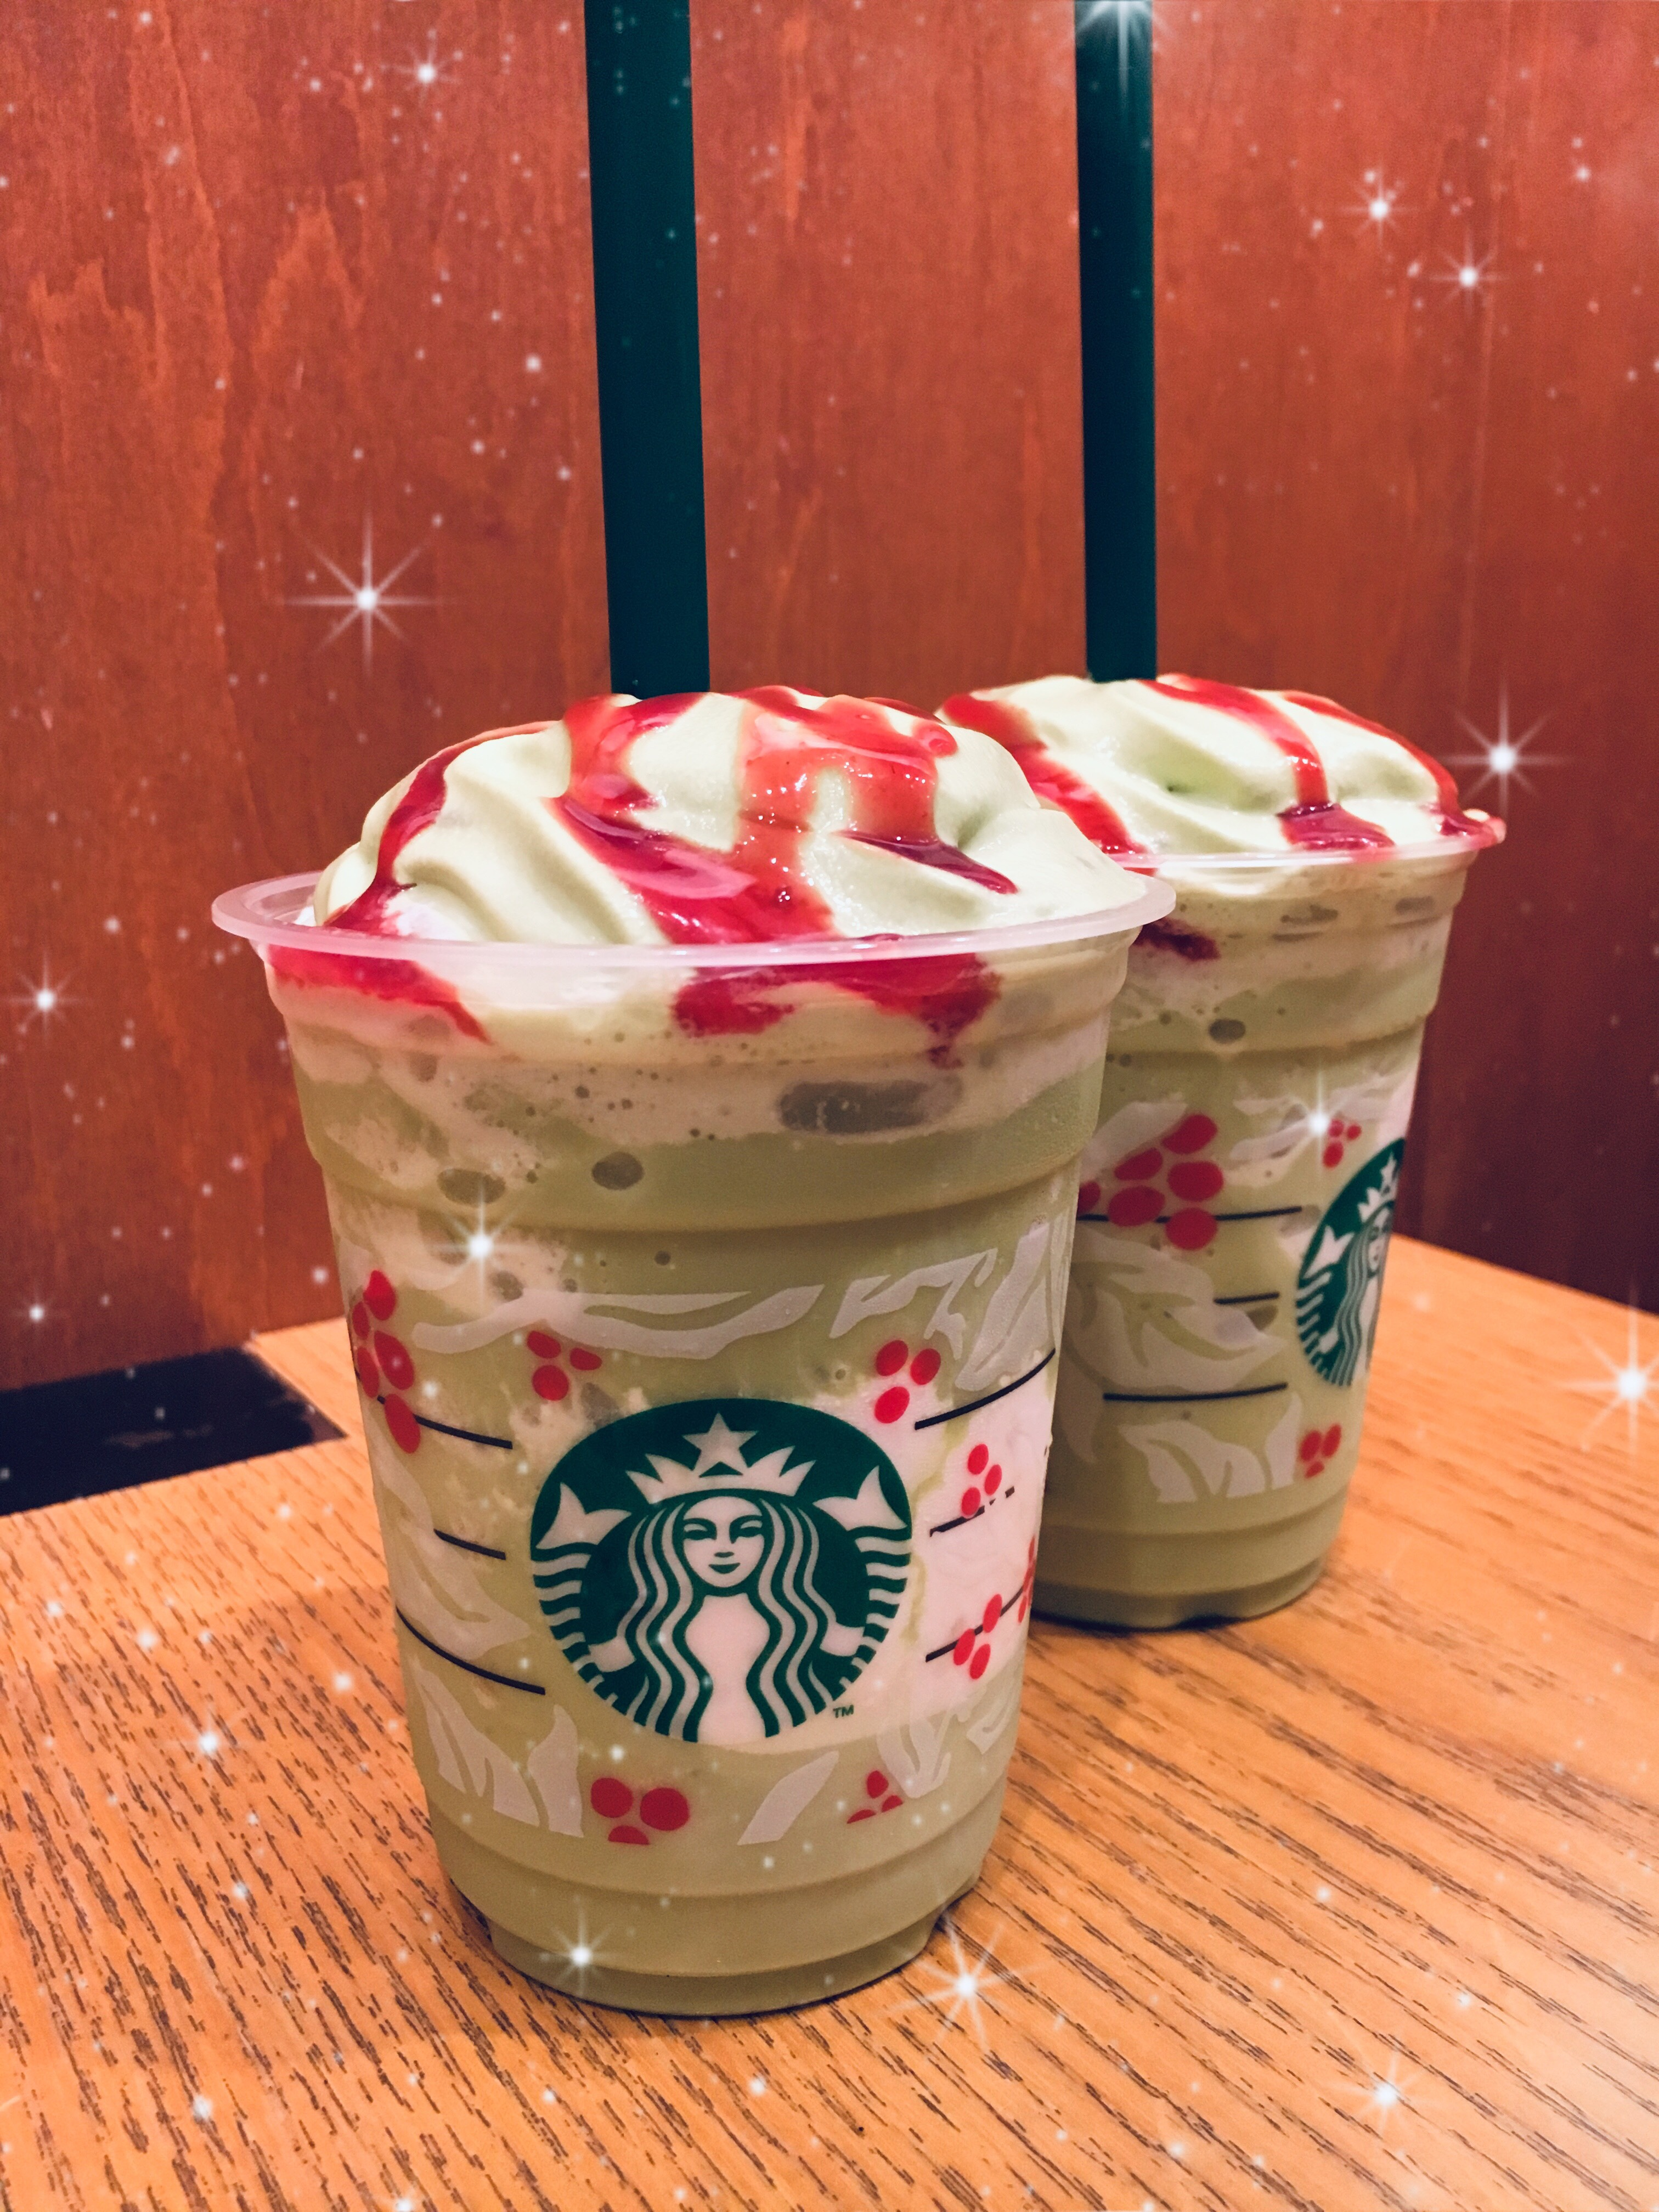 Starbucks Limited Edition Christmas Tree Frappuccino Pistachio